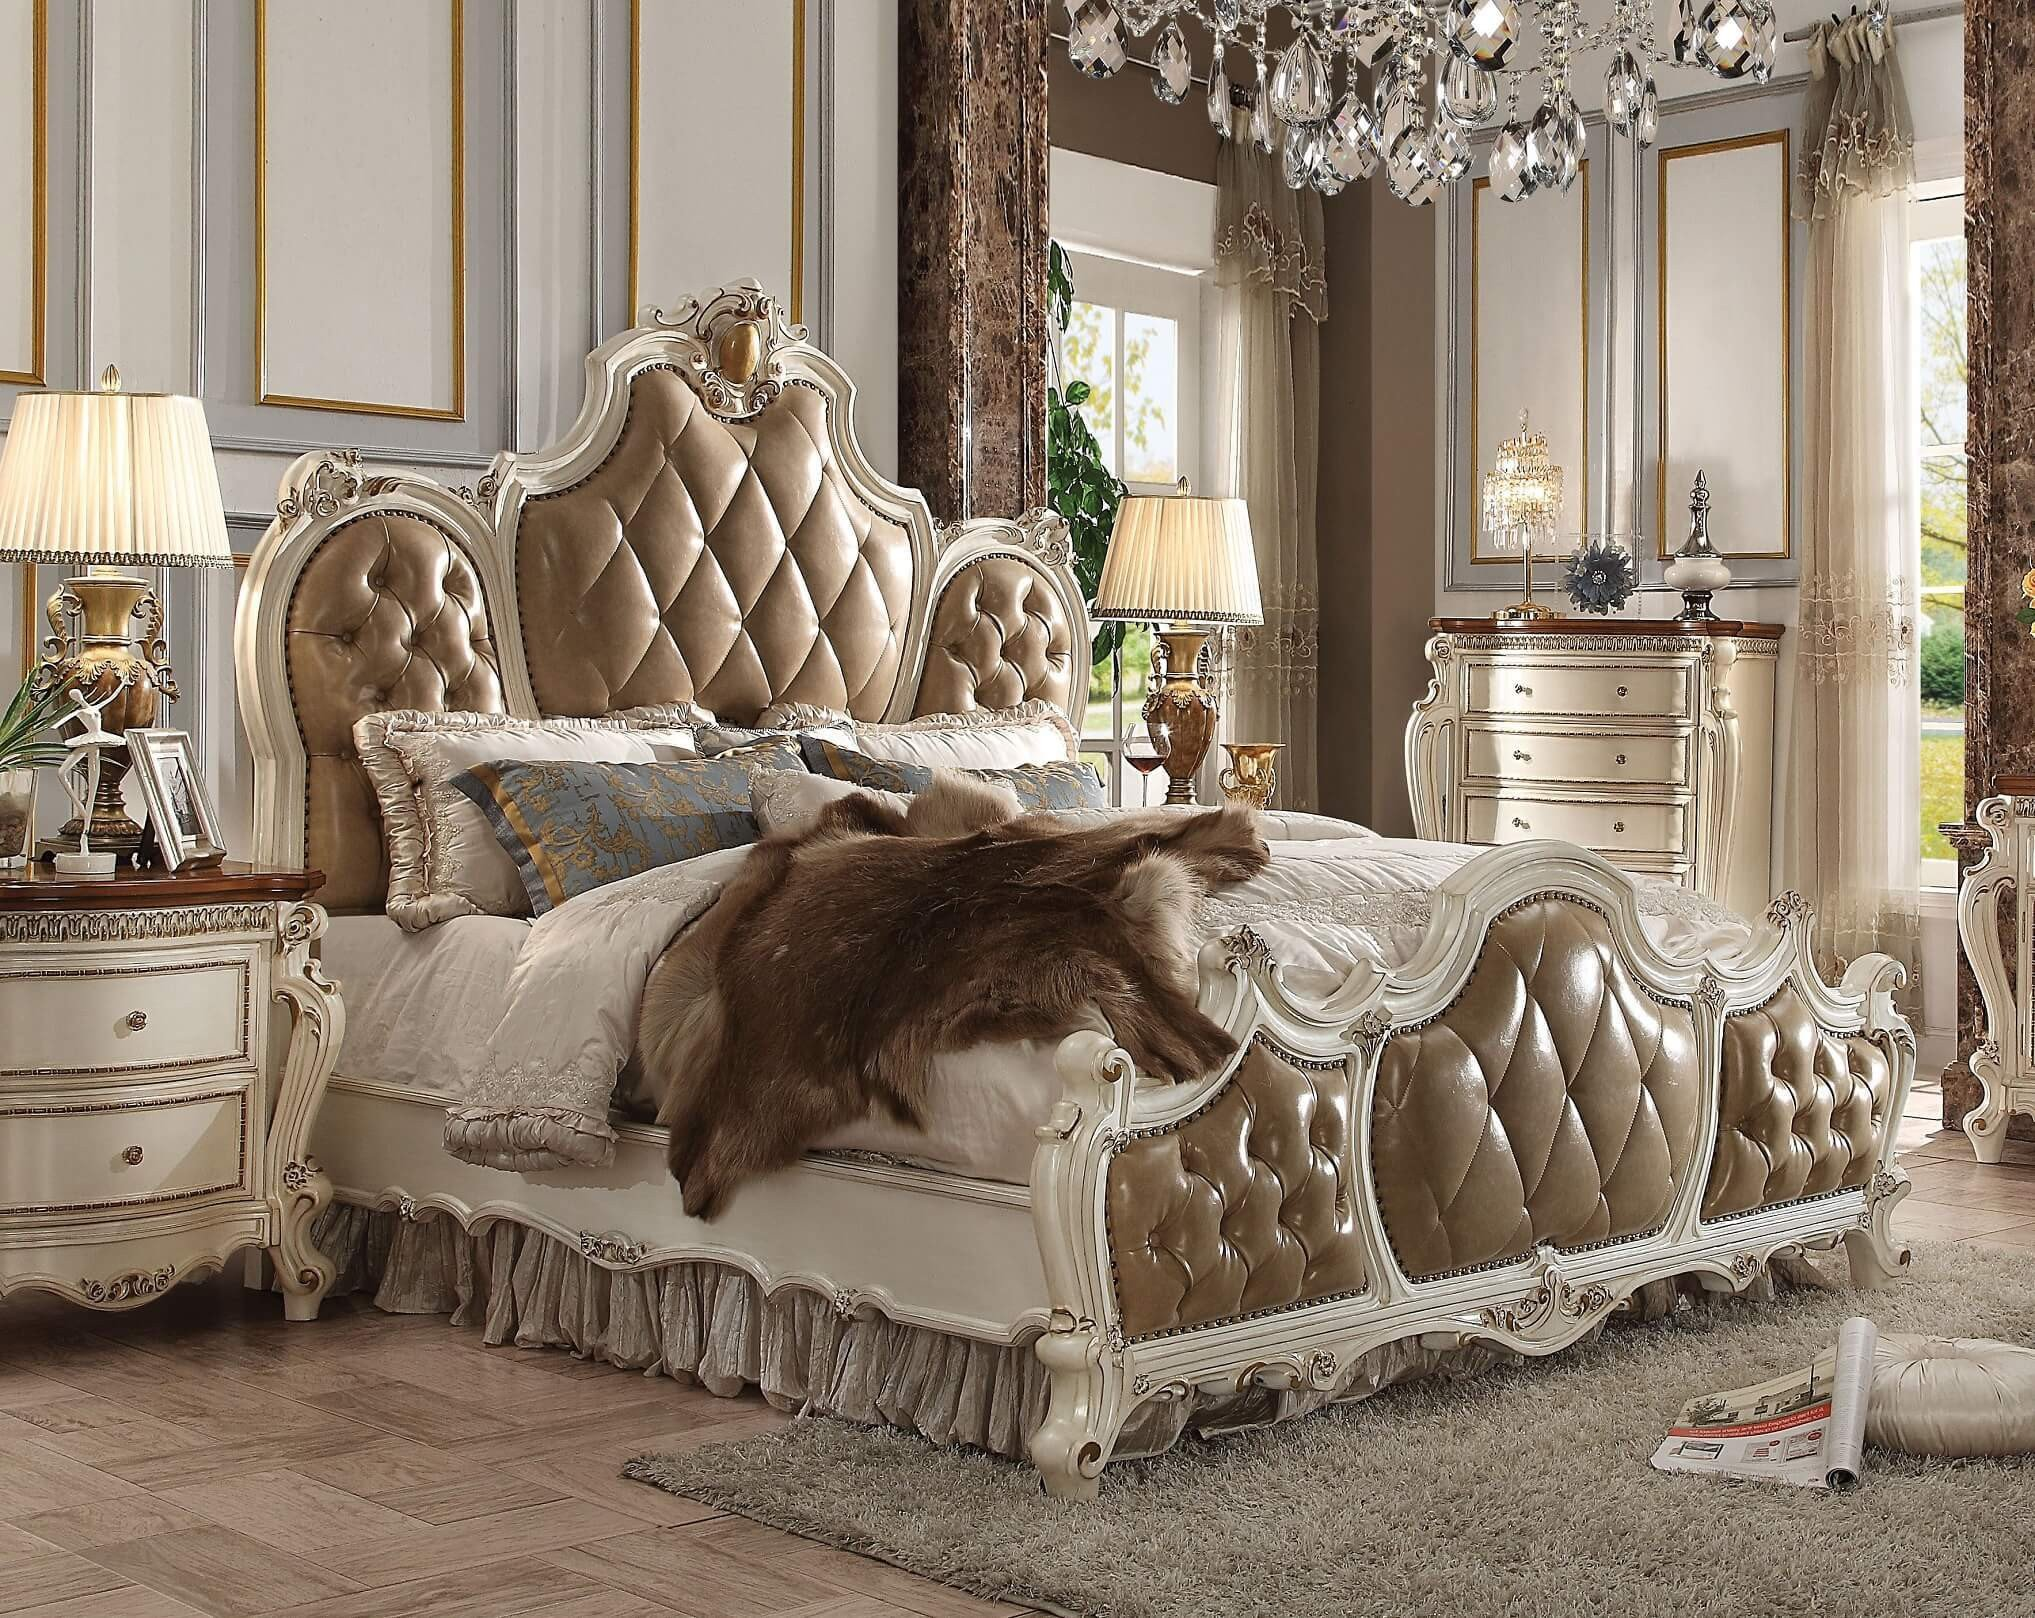 Tufted Headboard Bedroom Set Fresh Picardy Leather Upholstered Bed Acme Q